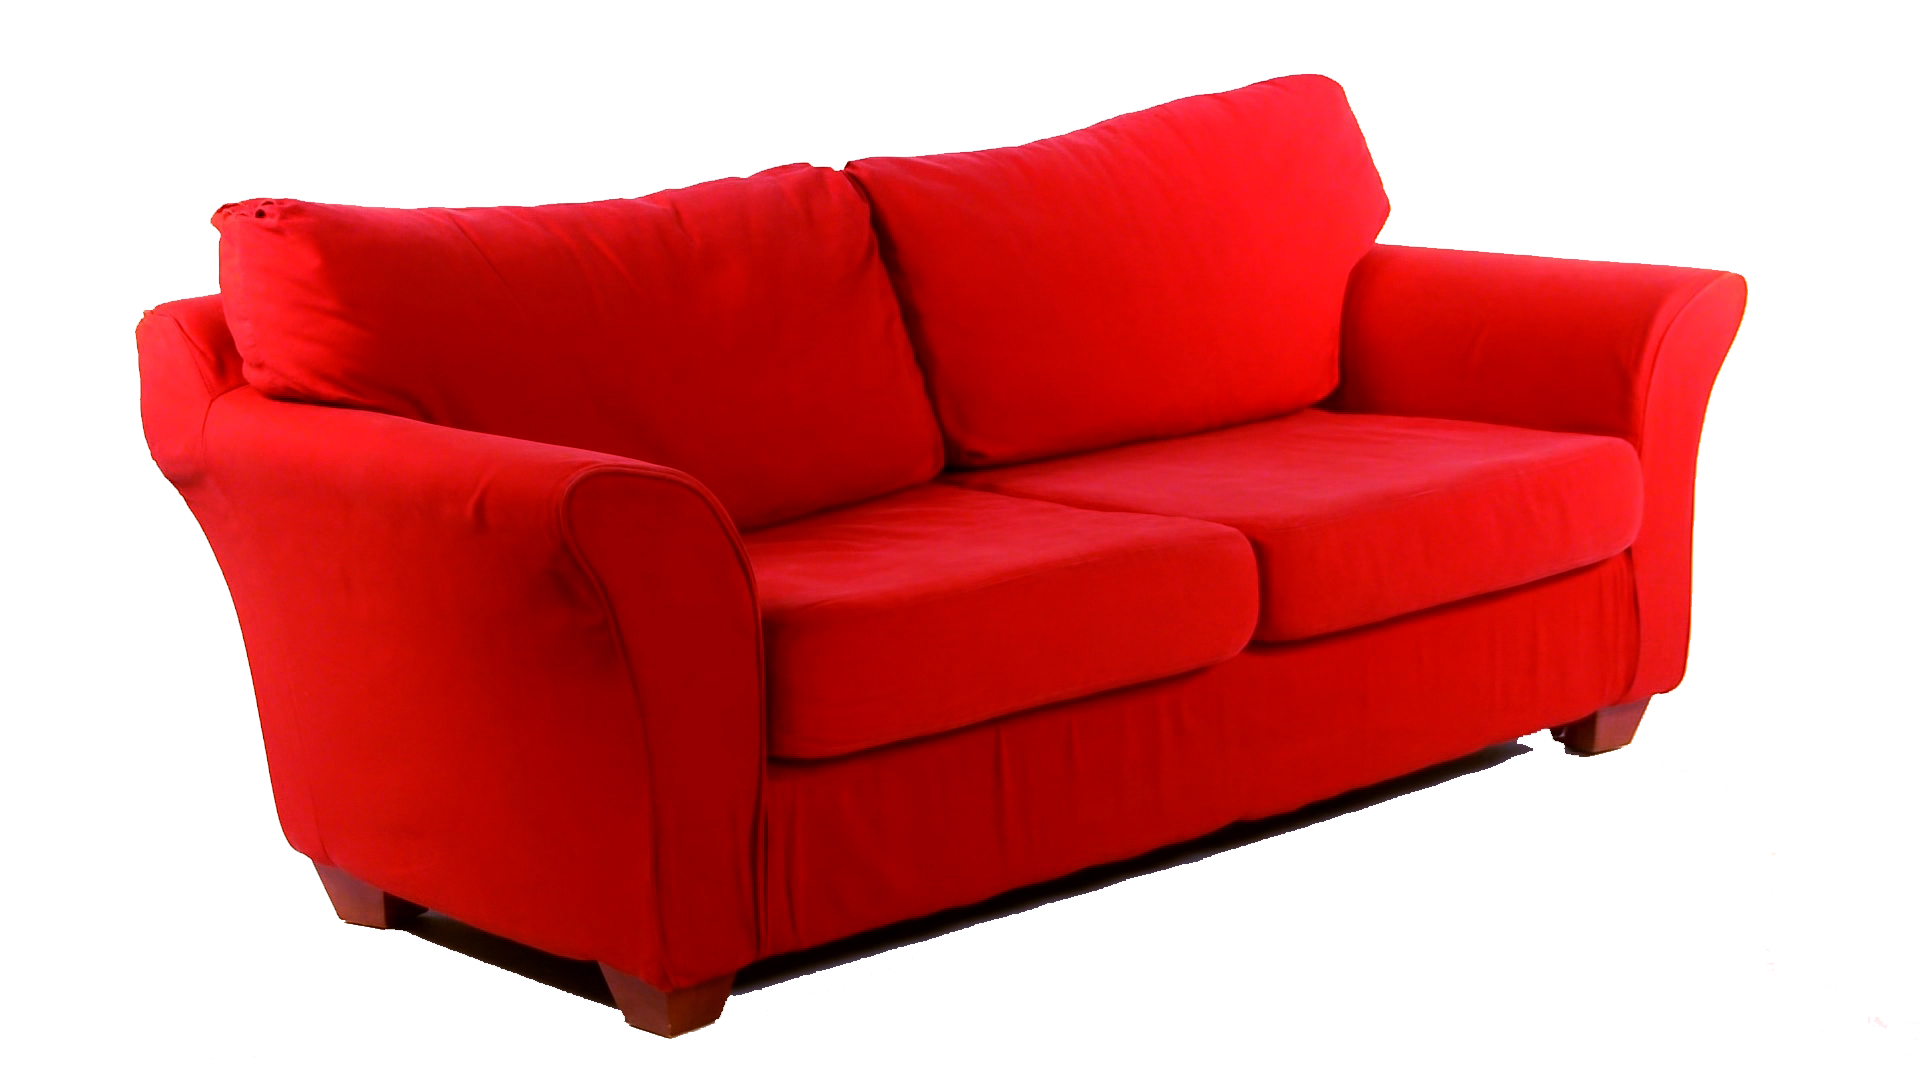 Red Couch Campaign kicking off in Birmingham